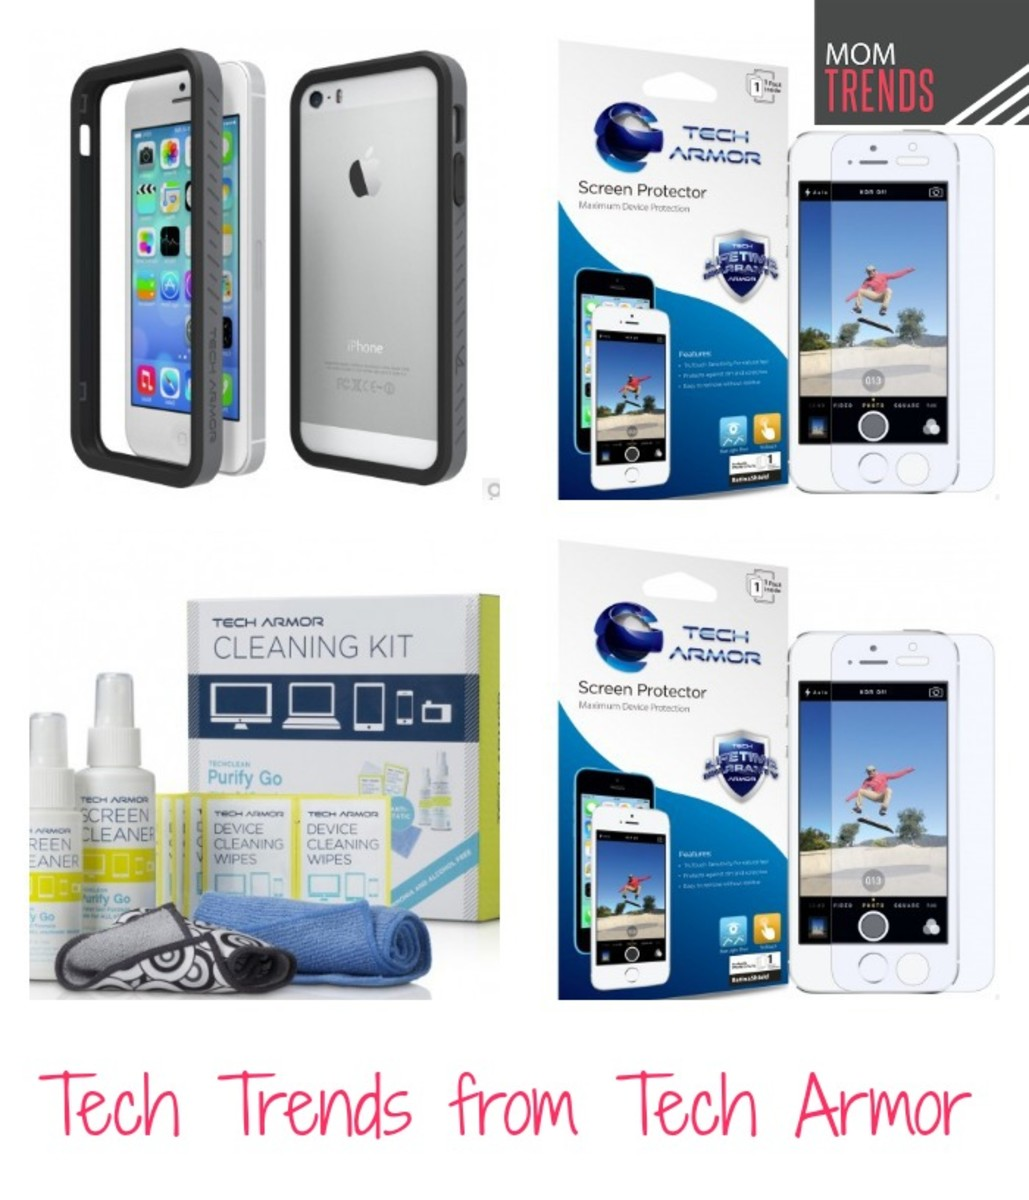 Tech Trends from Tech Armor